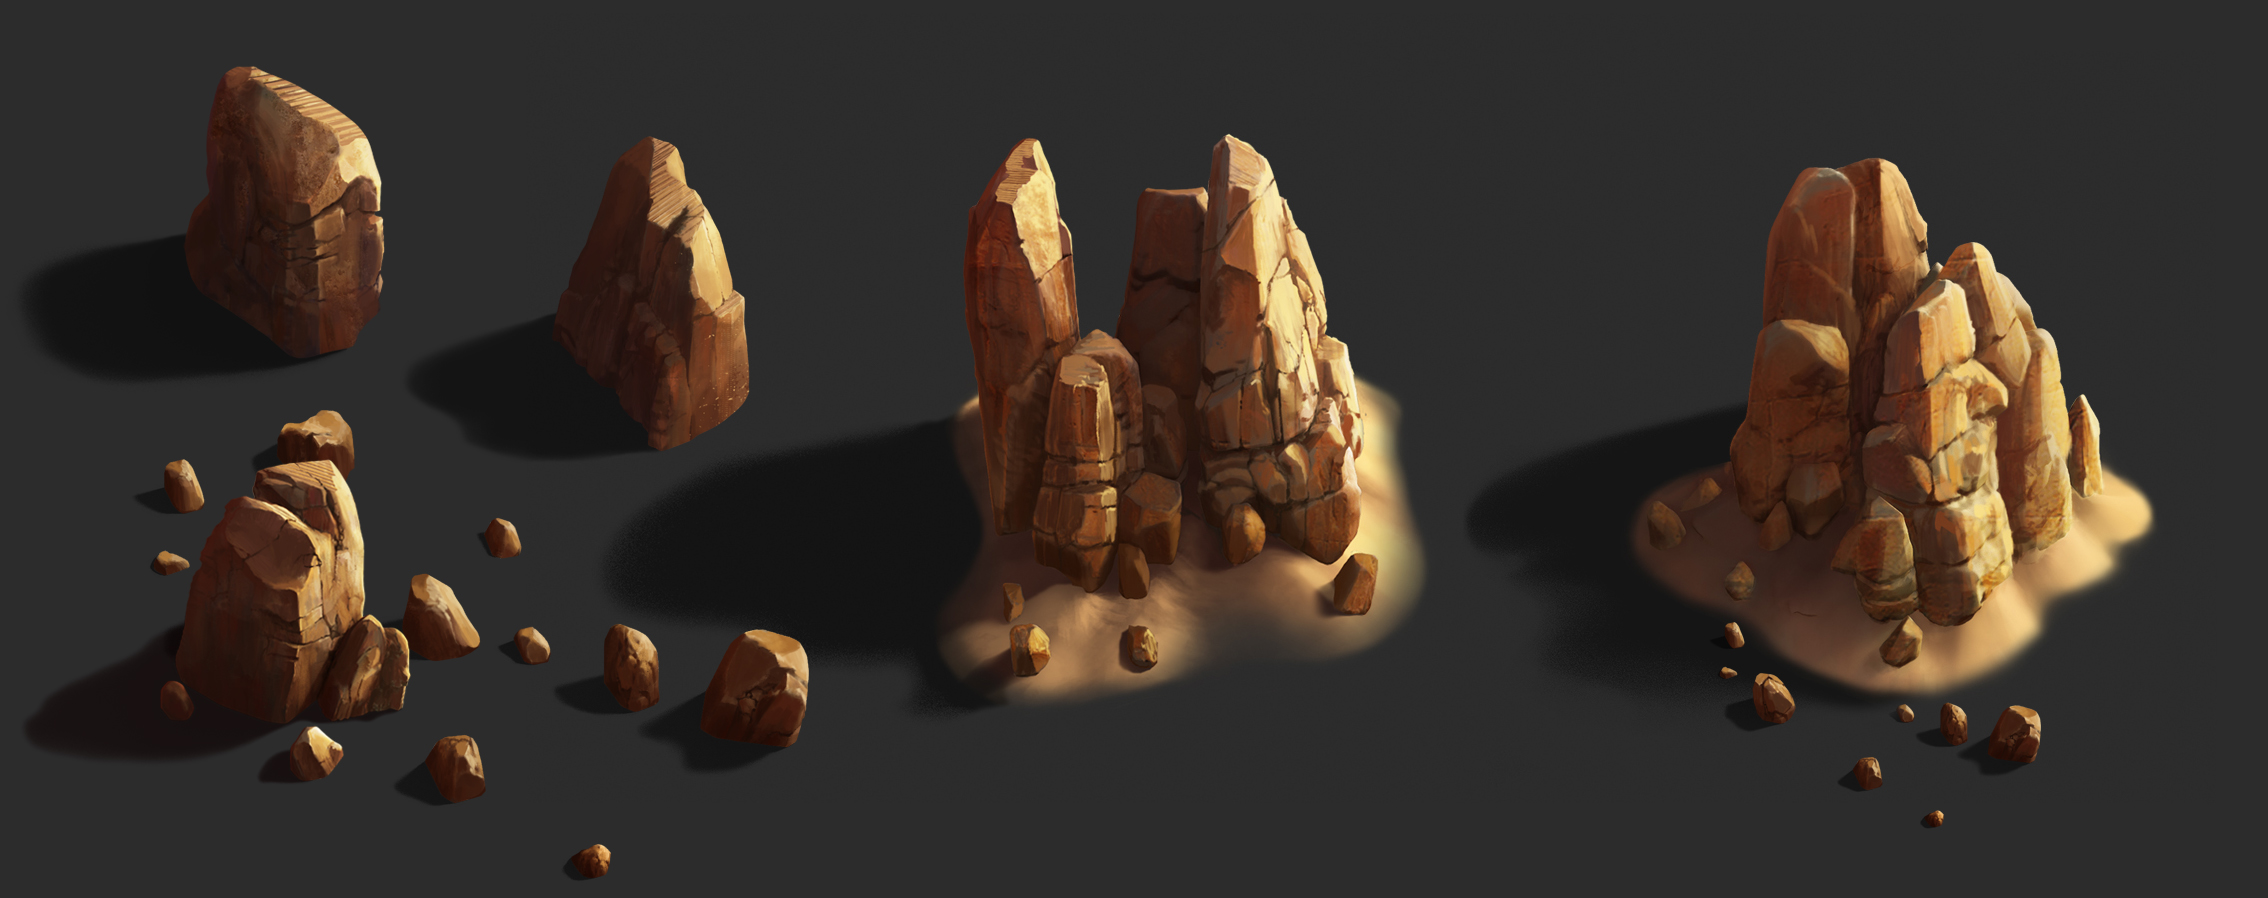 Rock_02 | ✏️2D/3D Environment Artist PRG/Action/RTS/Moba/Isometric